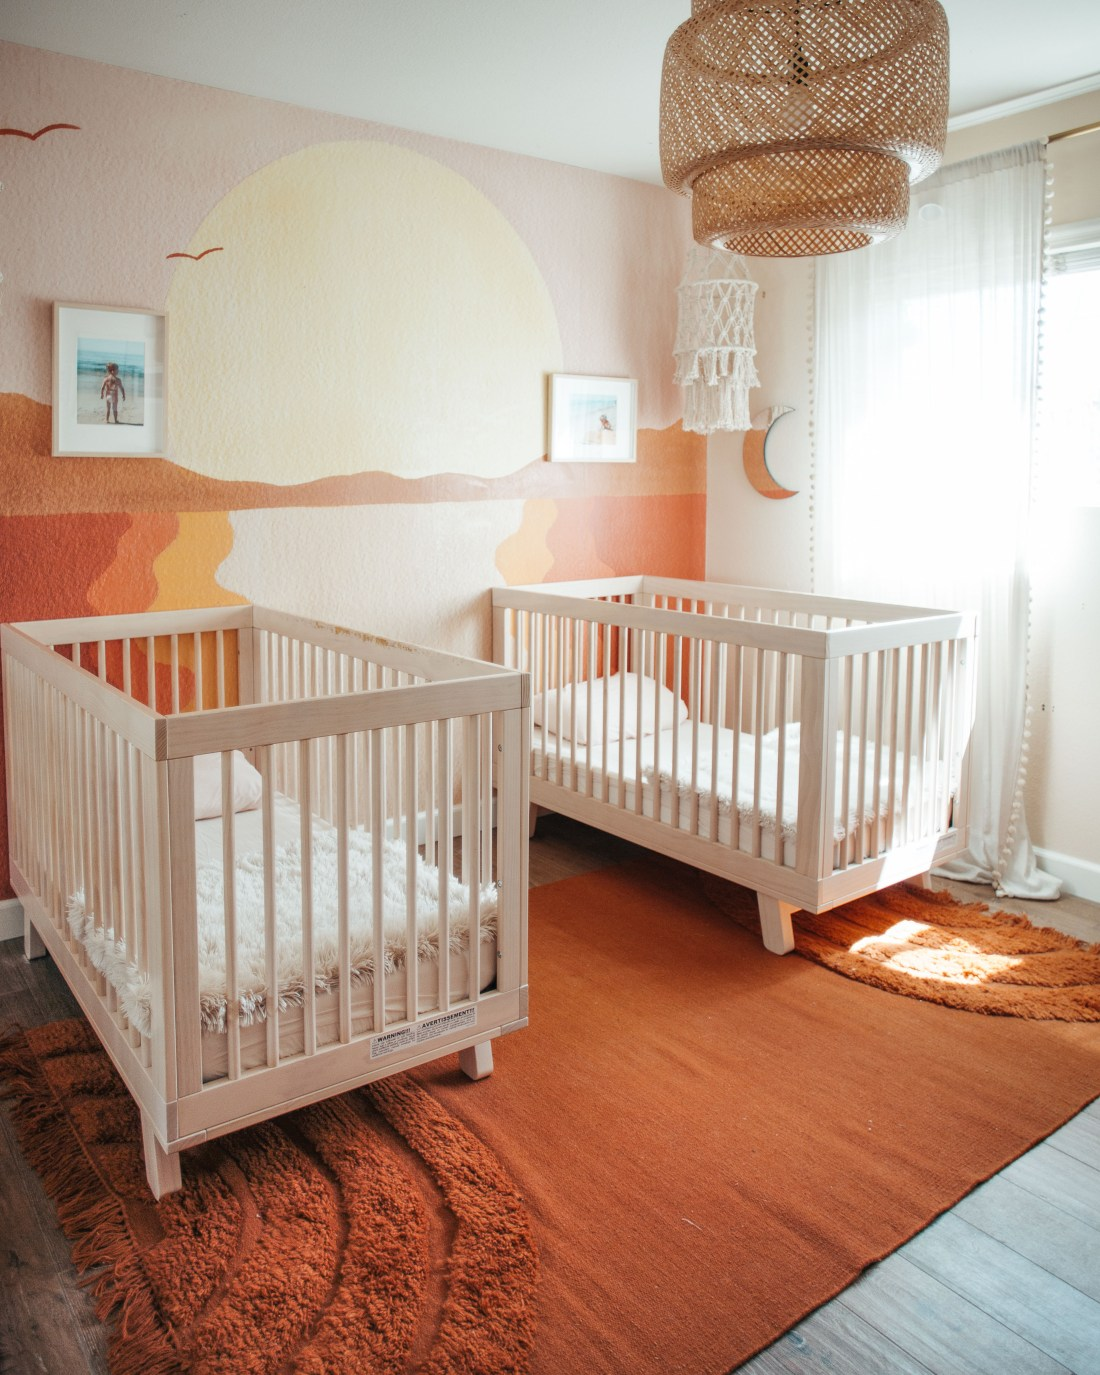 Romy and Piper's Twin Nursery